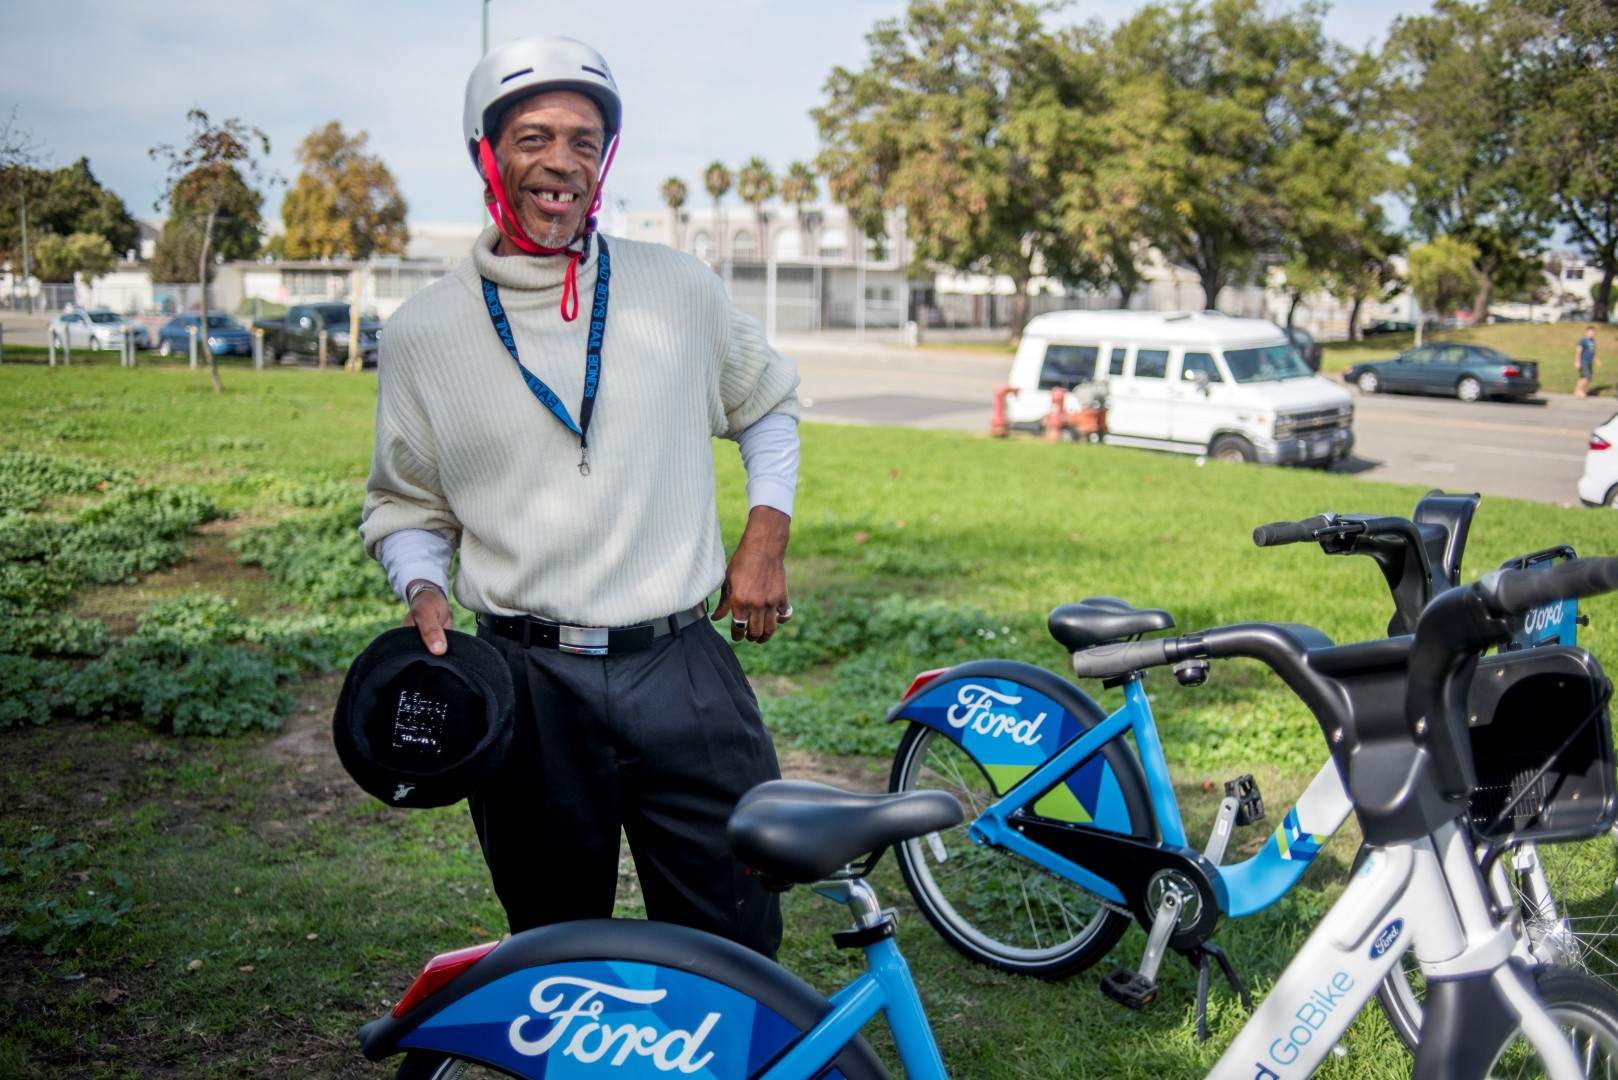 Image: a man tries out a Ford Go Bike. Photo: Pamela Palma Photography